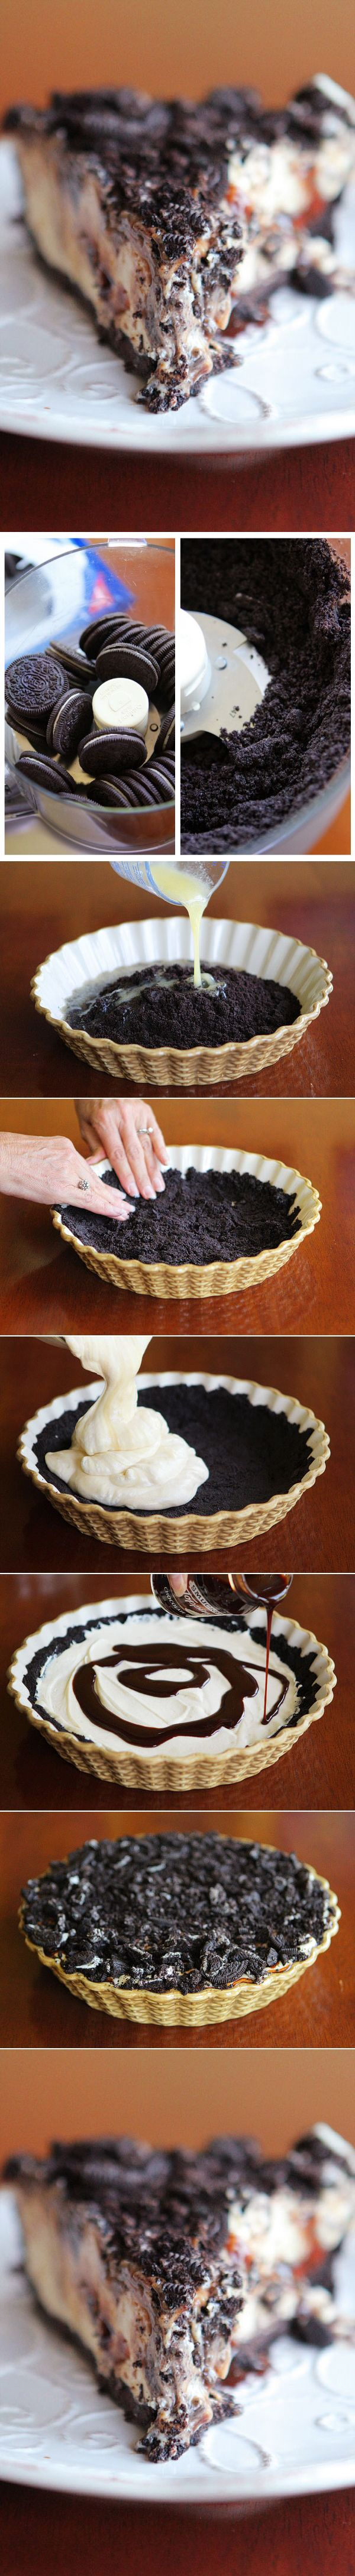 Peanut Butter Oreo Ice Cream Pie - Oh my! I need to find a party to go to so that I have an excuse to make this!